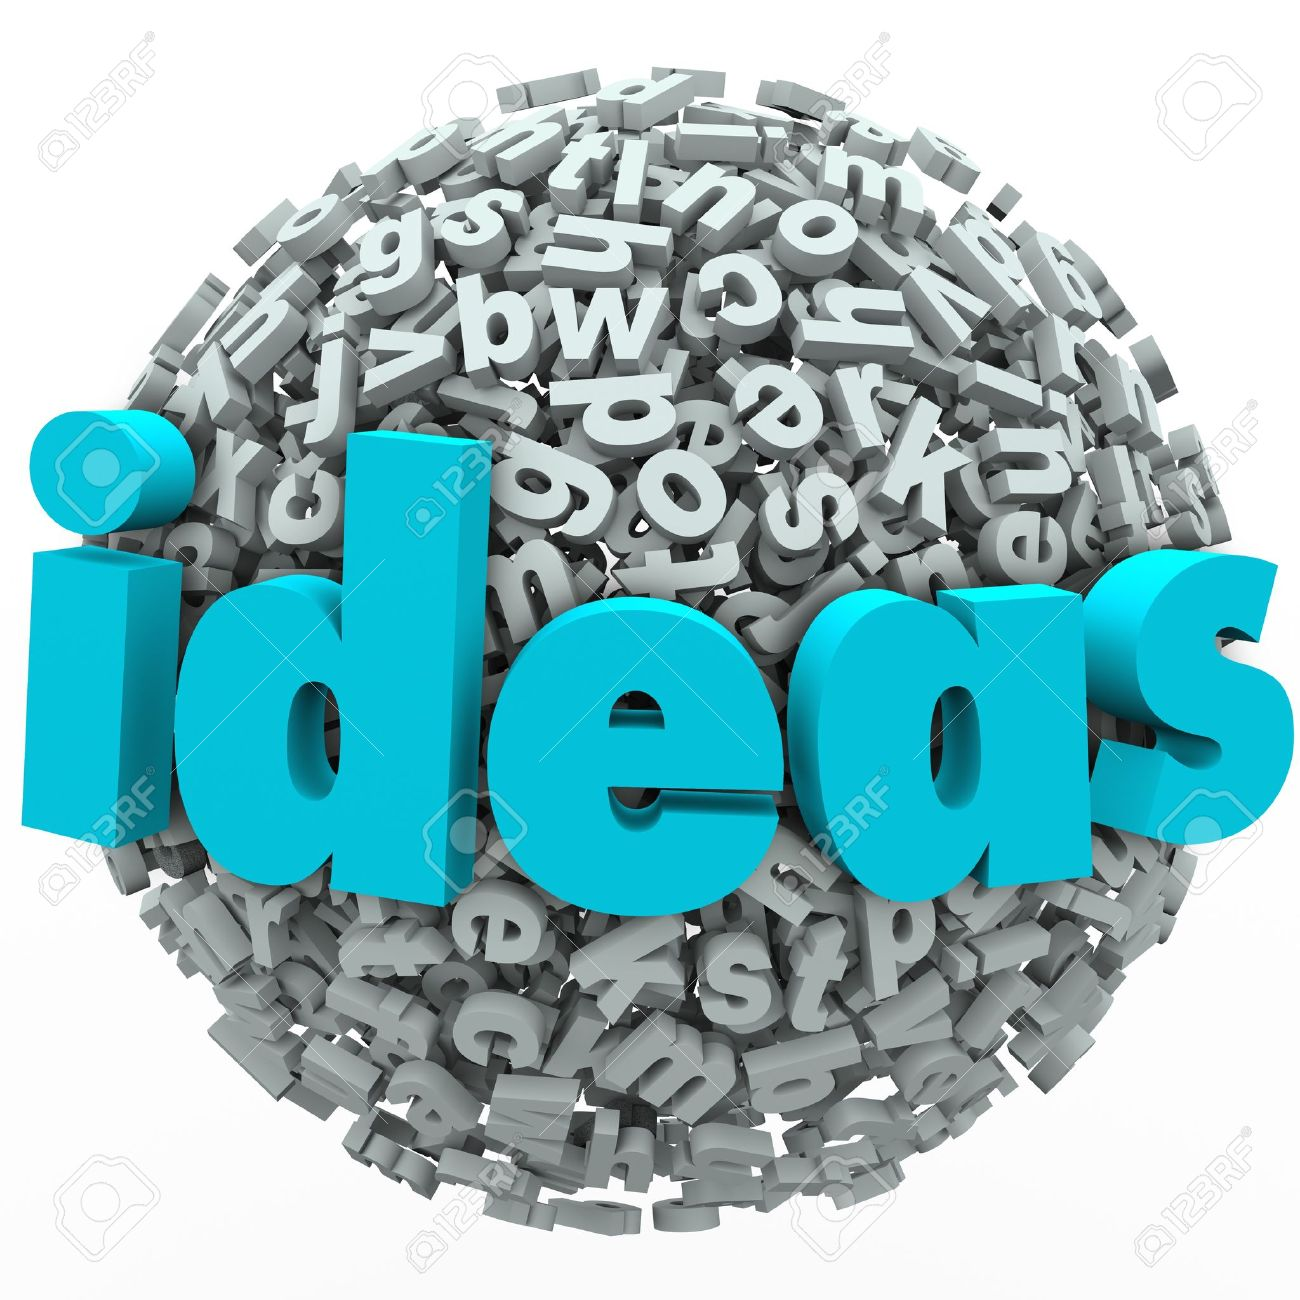 A ball or sphere of letters and the word Ideas to illustrate creativity, imagination, brainstorming and thinking of a solution or new innovative approach Stock Photo - 20329609